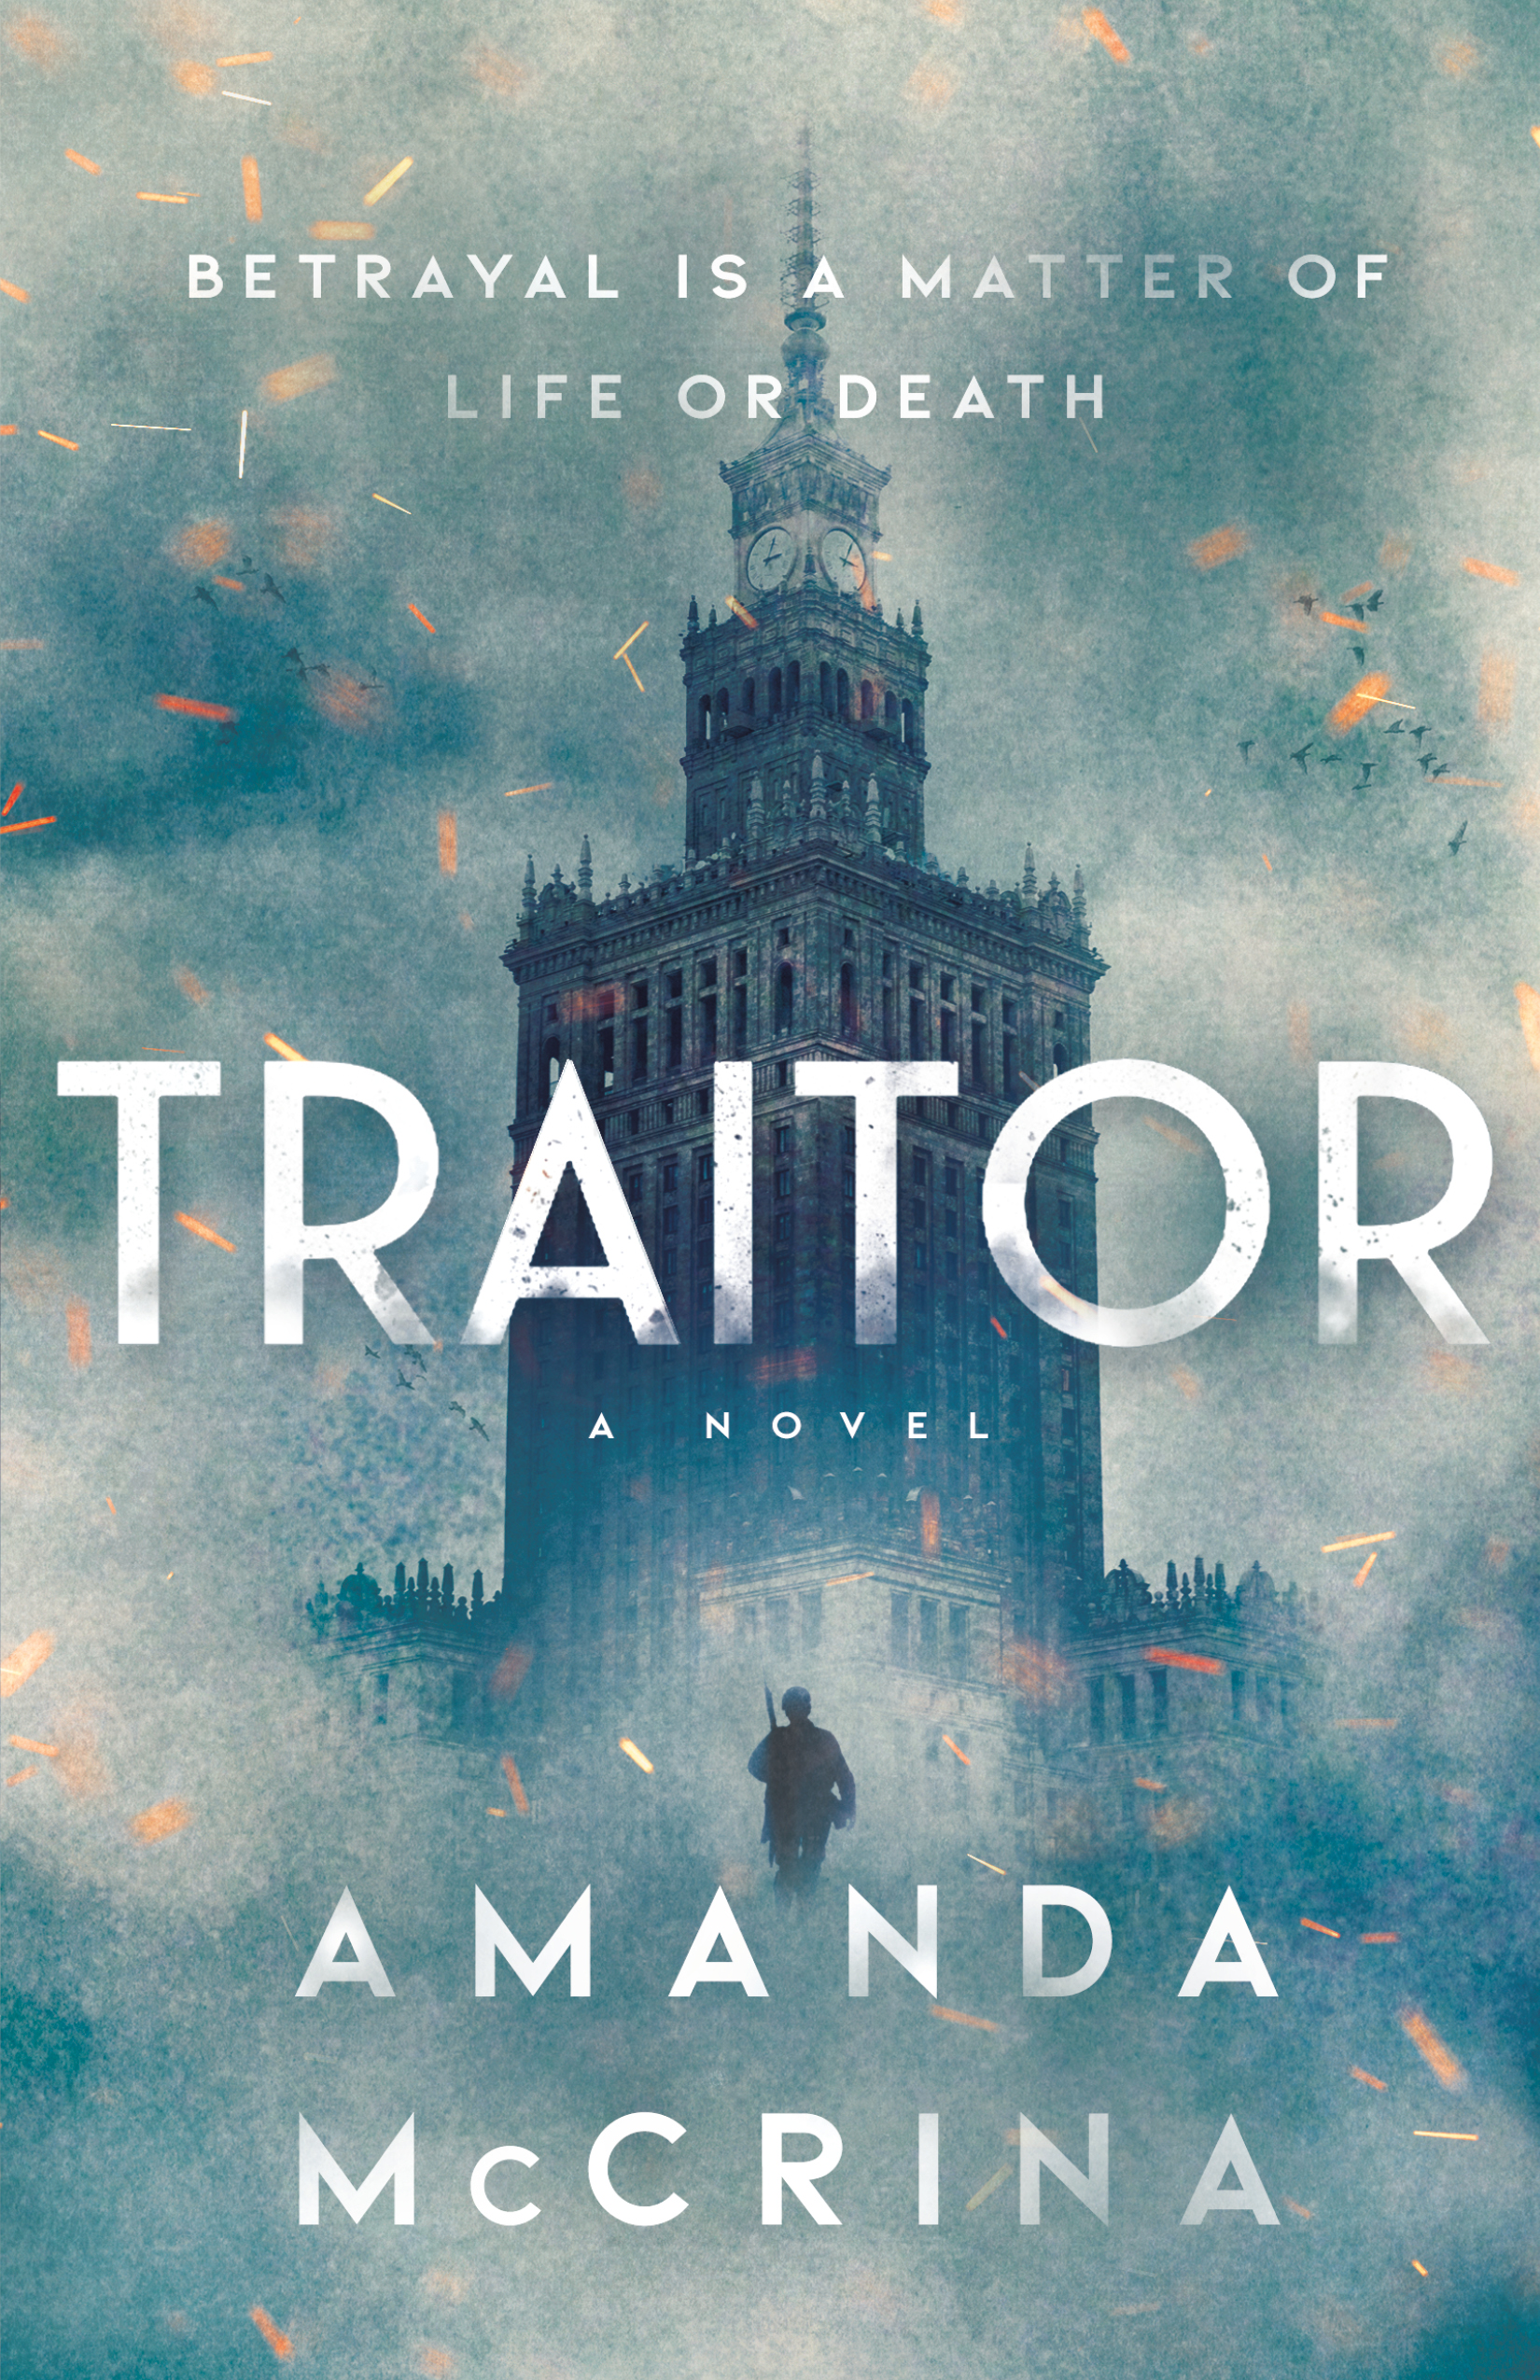 Blog Tour & Review: Traitor by Amanda McCrina